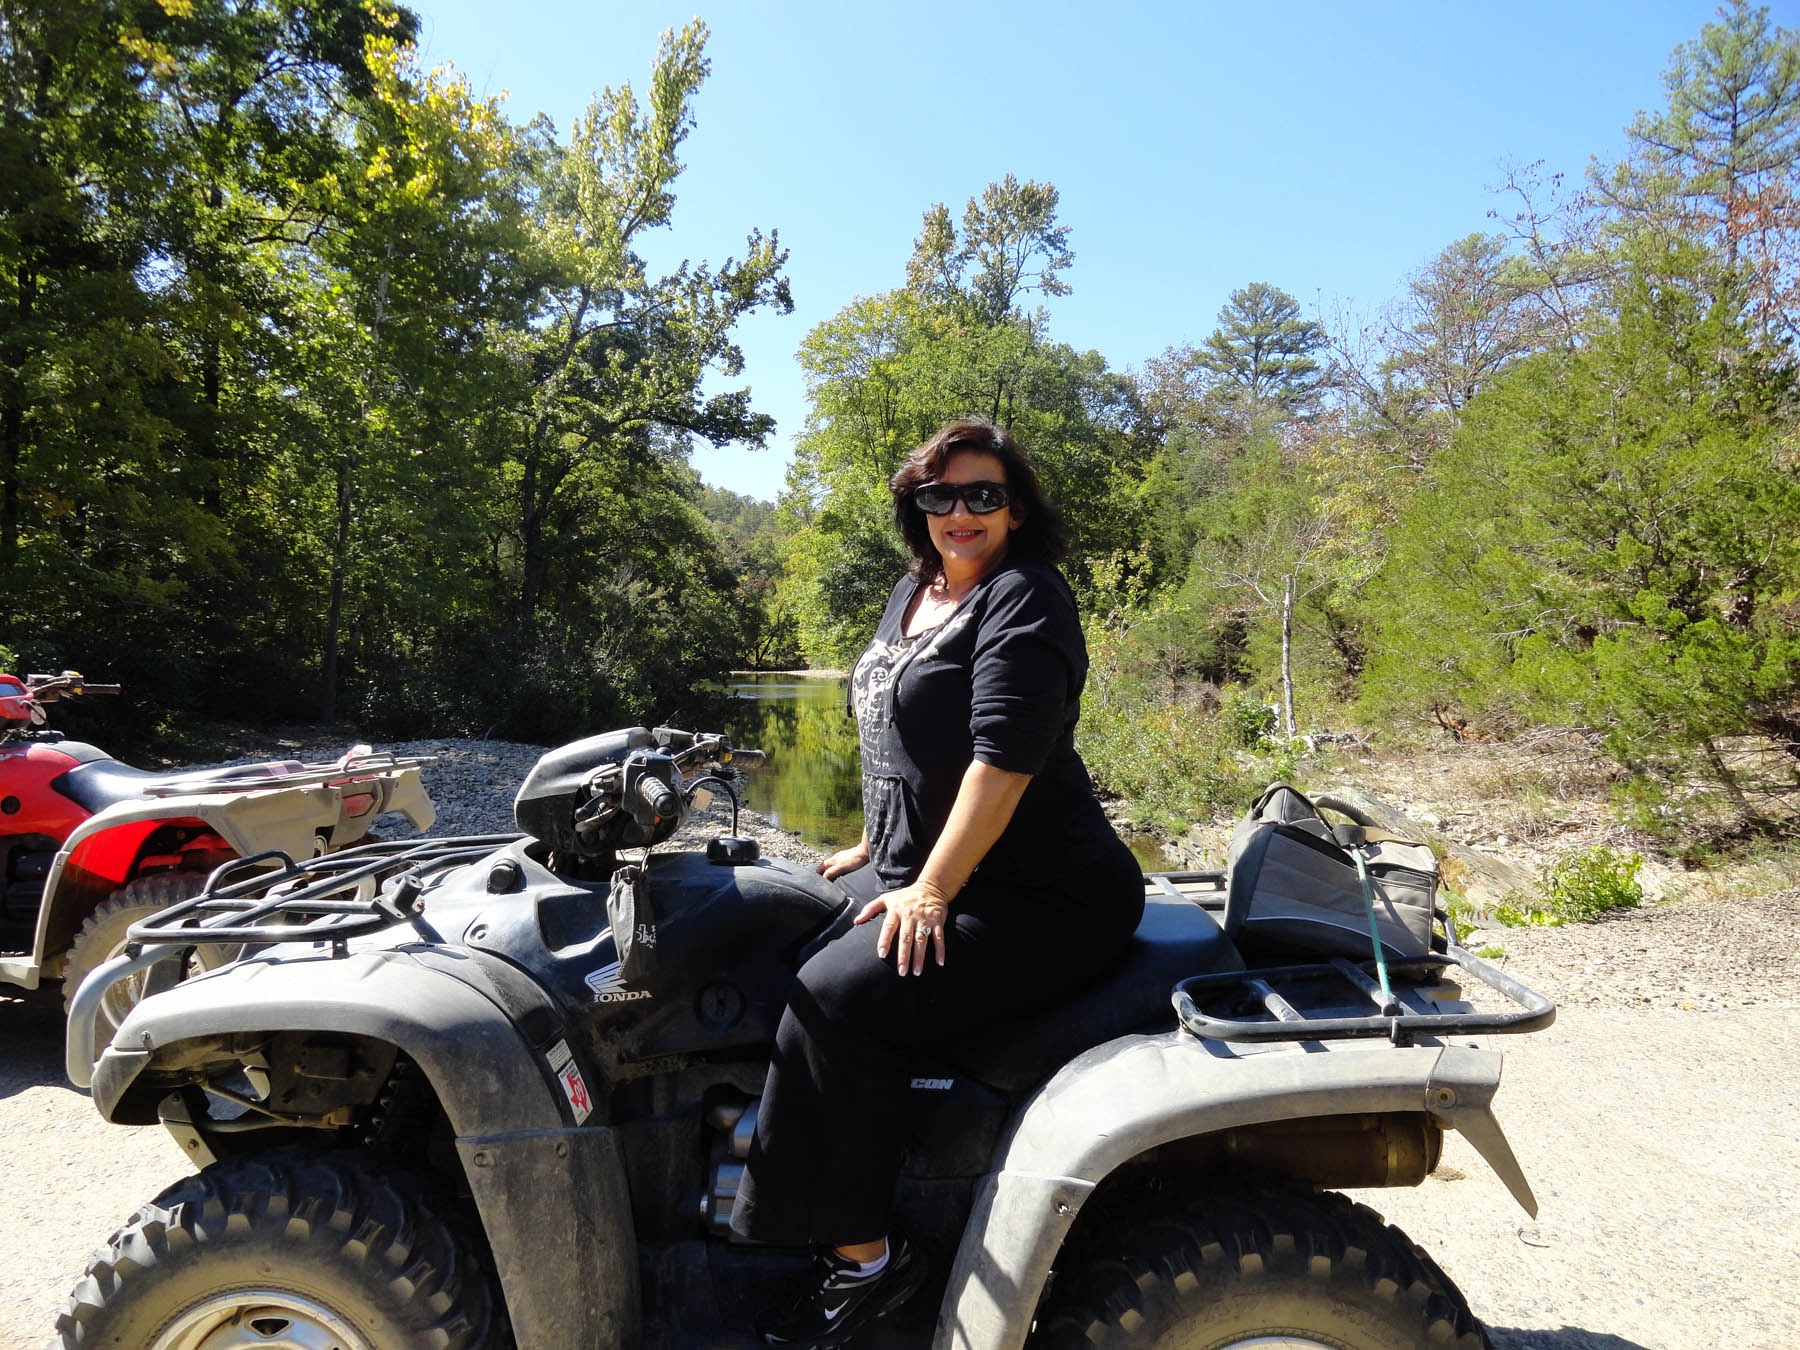 Woman on atv.